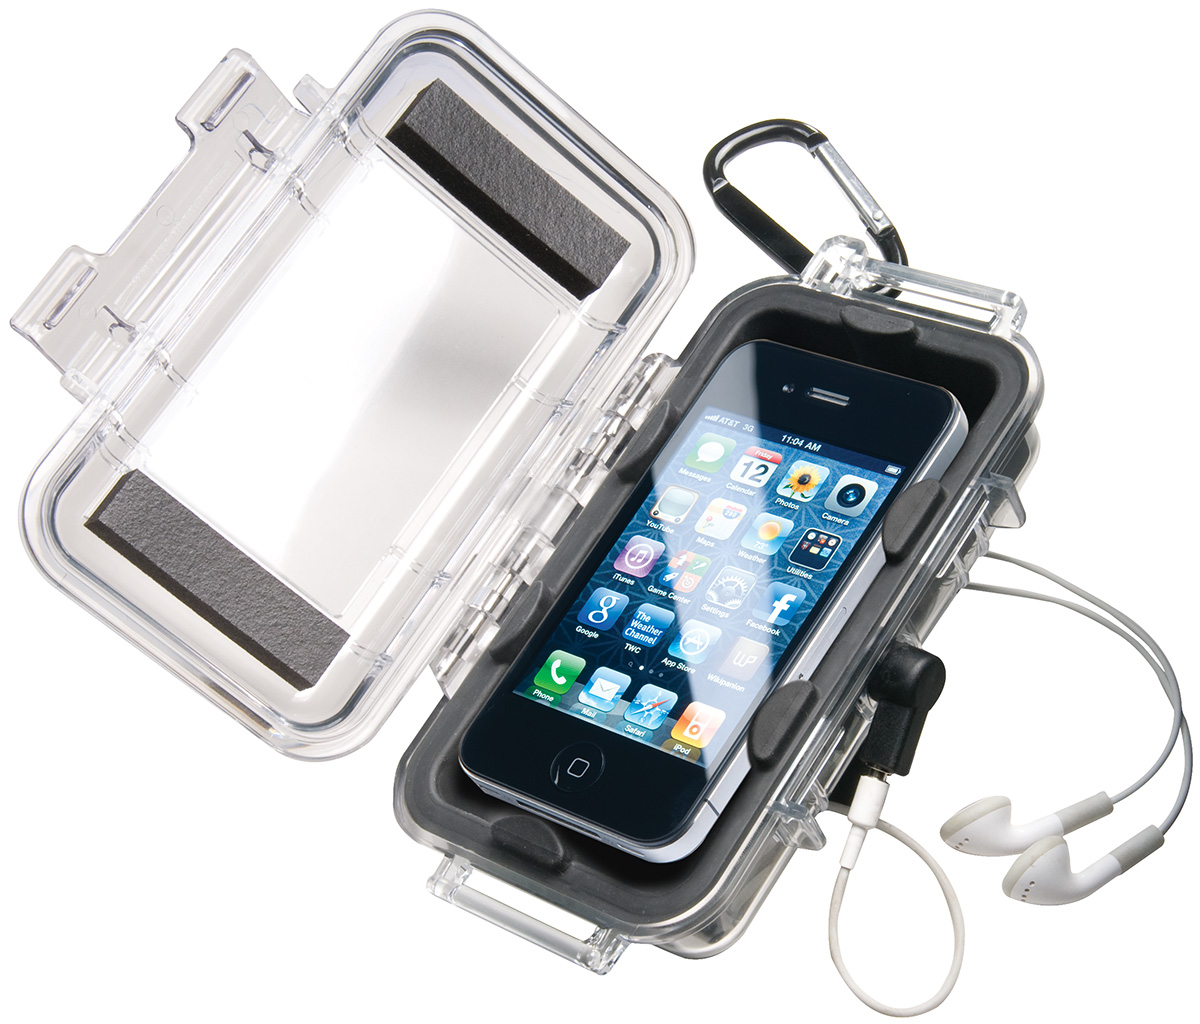 pelican i1015 watertight iphone protection hardcase